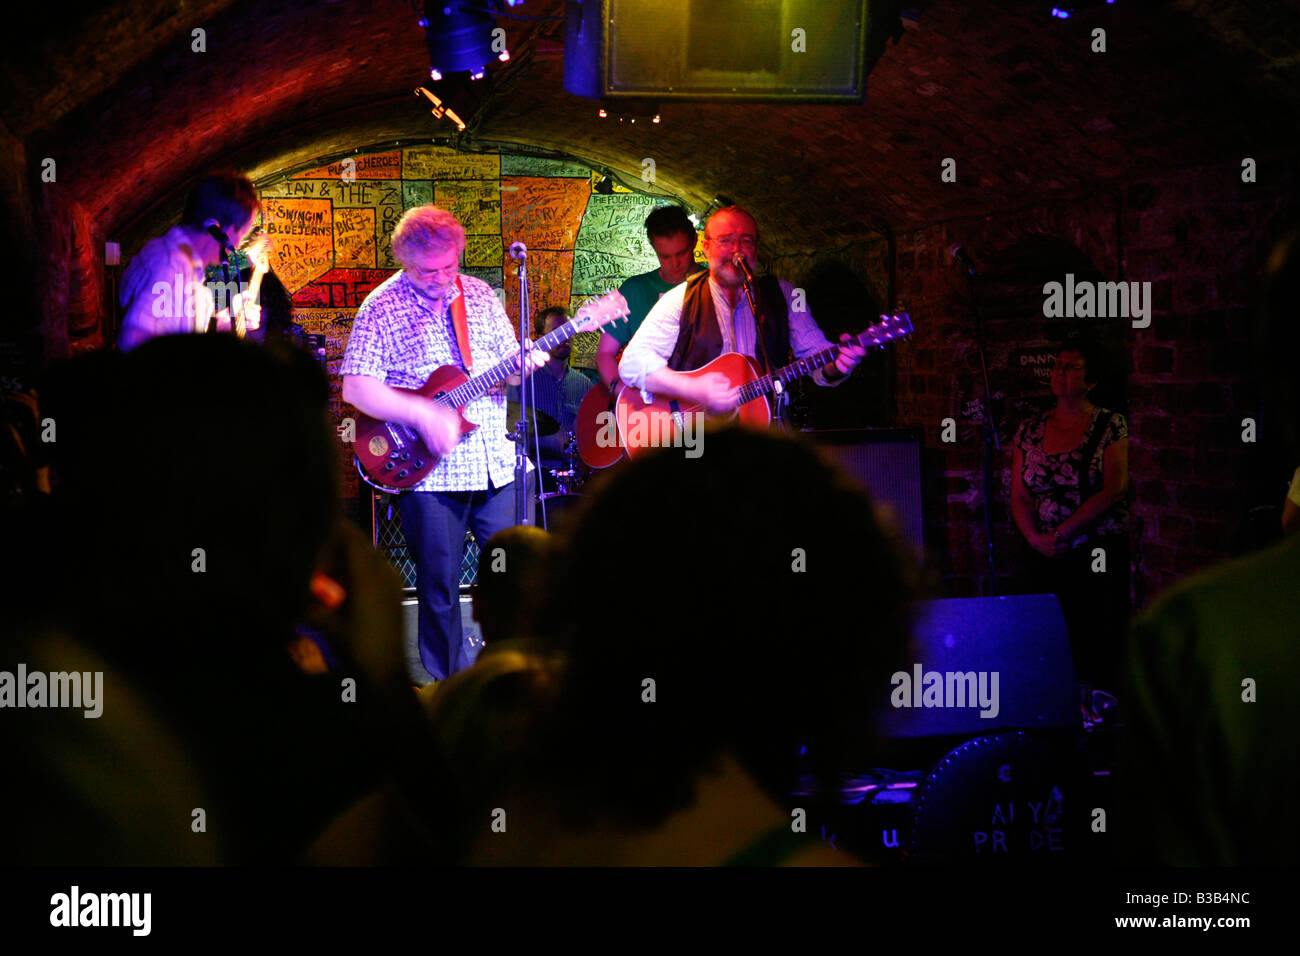 July 2008 - Live music show at the Cavern club Liverpool England UK - Stock Image